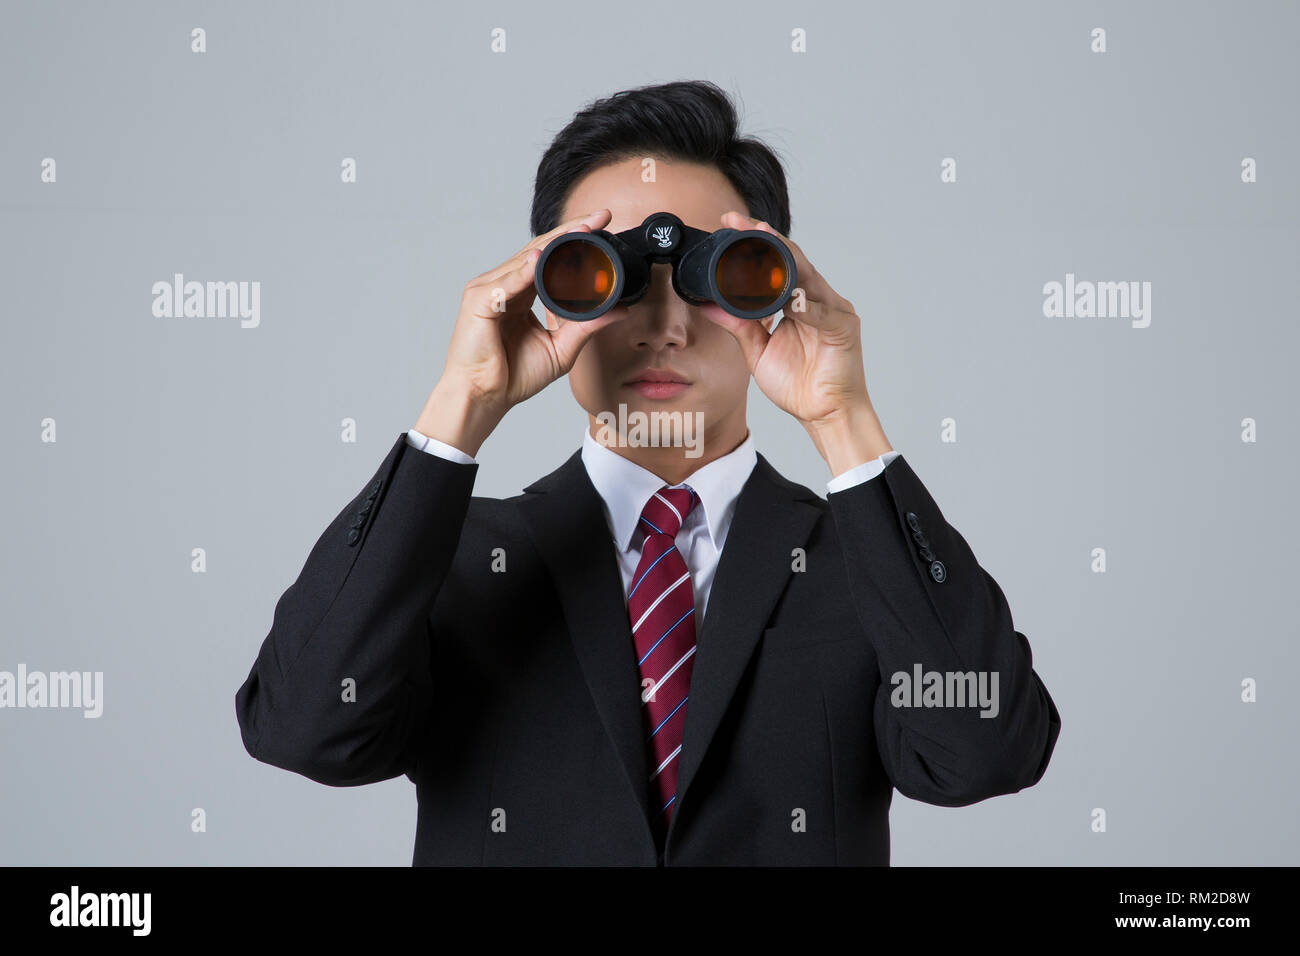 Young businessman concept photo. 088 - Stock Image